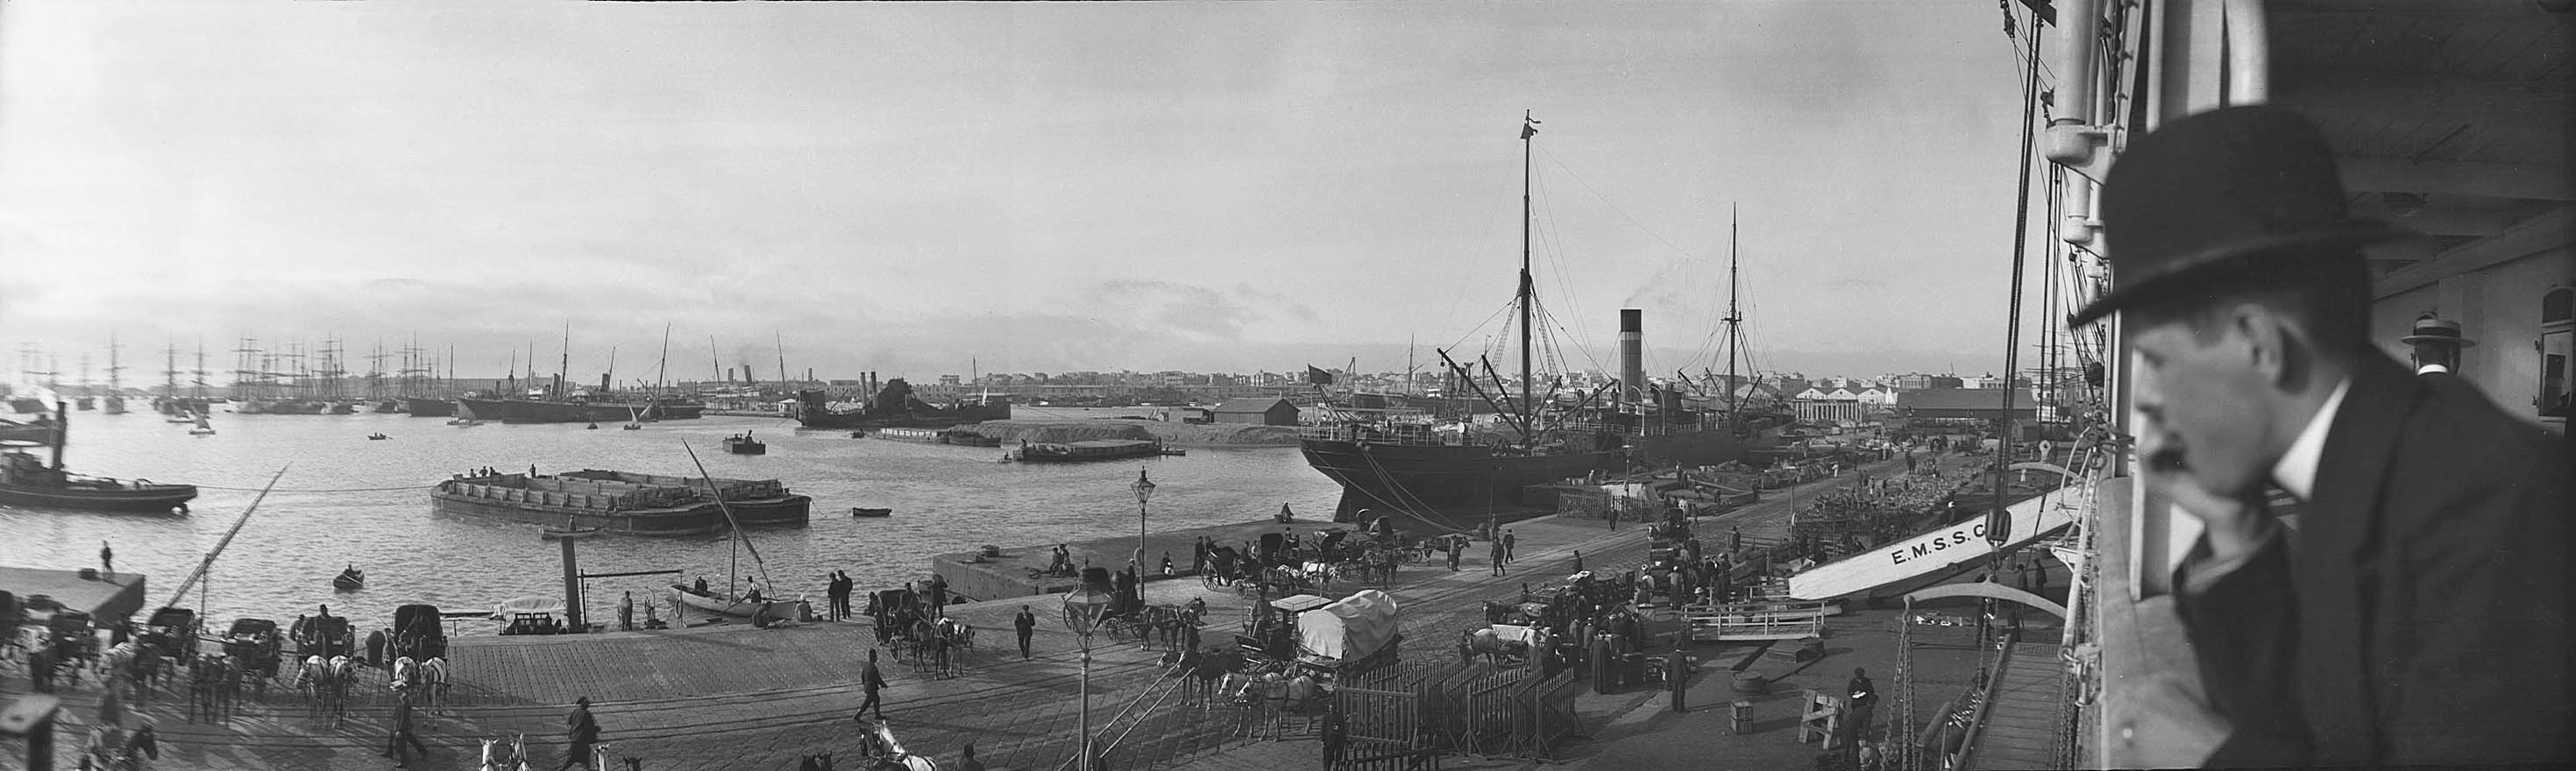 Port of Alexandria, Egypt, 1900s